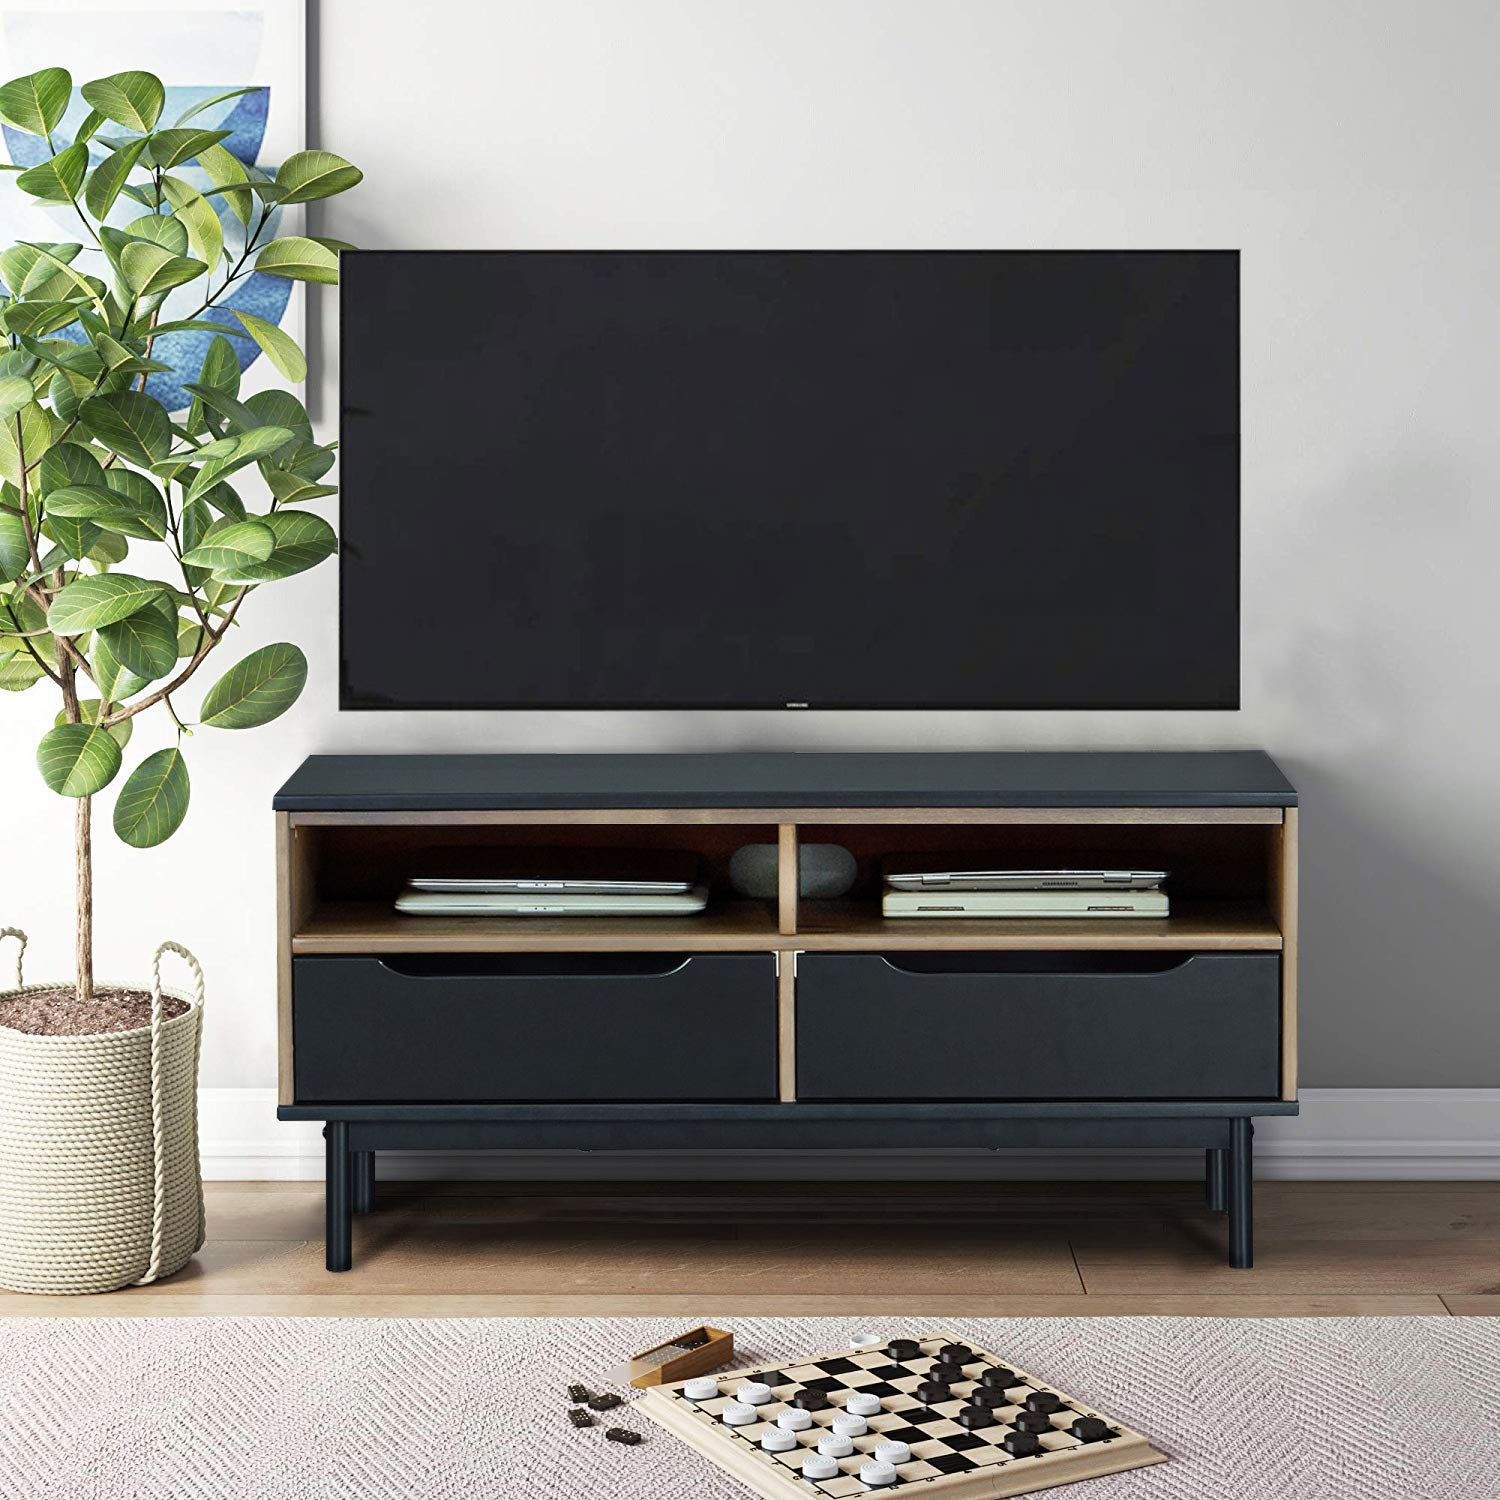 MUSEHOMEINC Wood TV Stand/Media Console with Shelve and Drawer for Living Room,Mid-Century Modern Style,TV Sides Up To 50 Inch/Multipurpose Entertainment Media Center,Black and Antique Gray Finish by MUSEHOMEINC